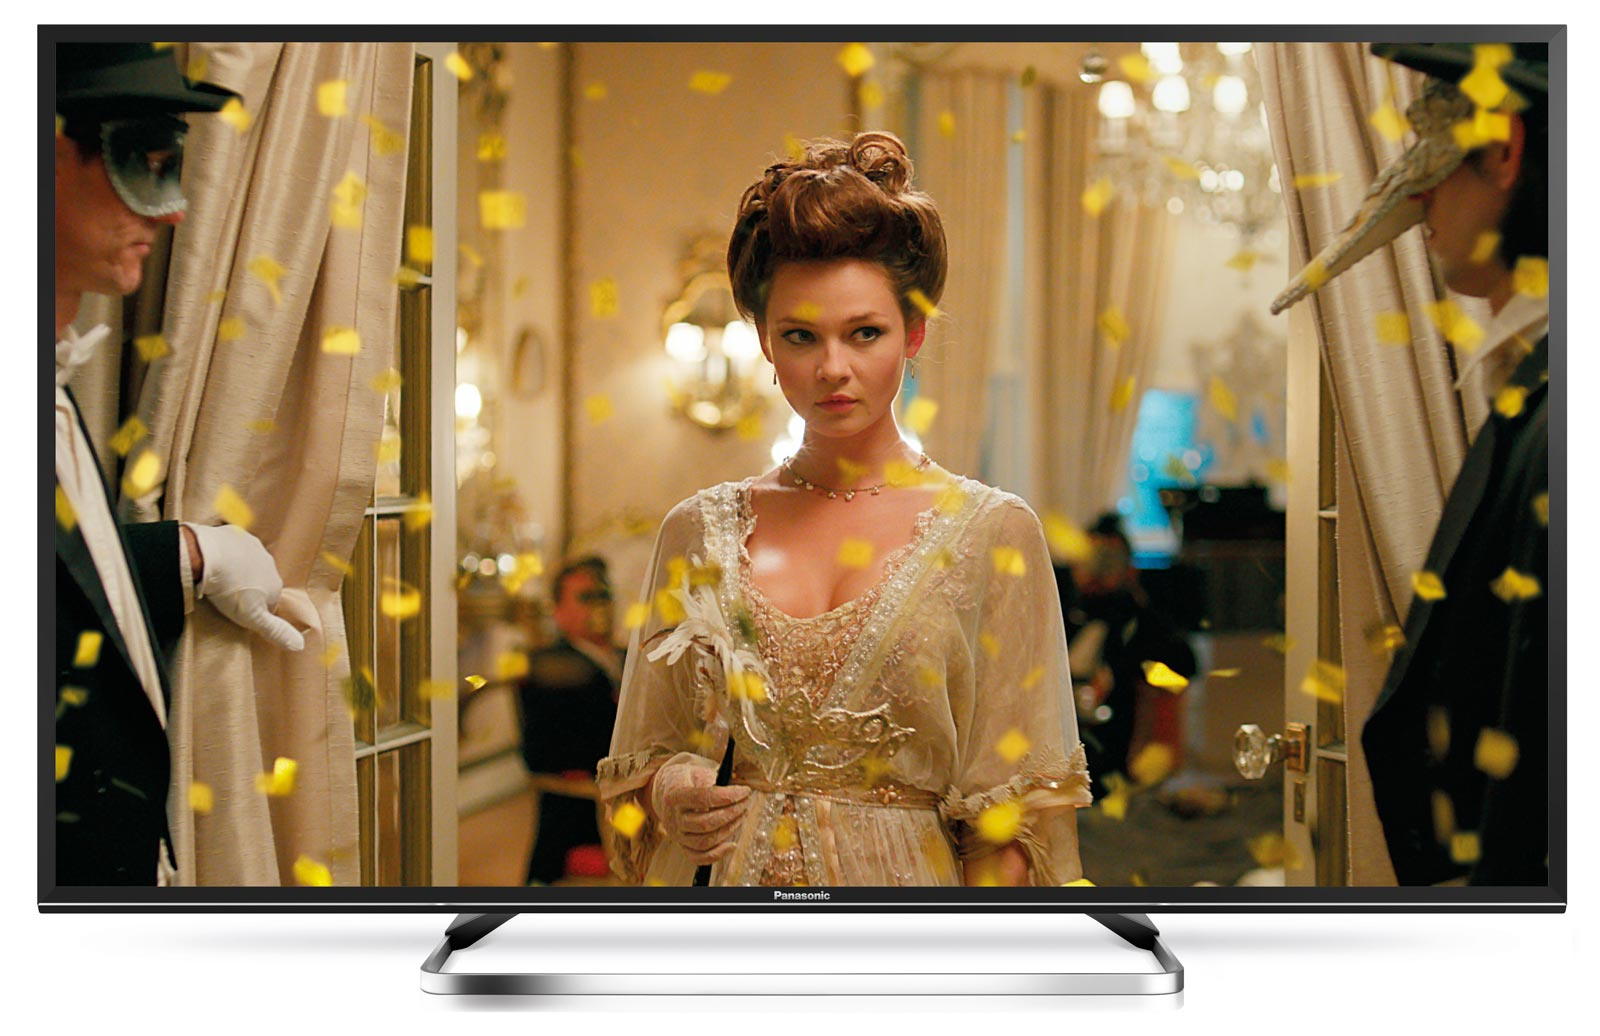 Panasonic 2017 TV line-up - full overview with prices